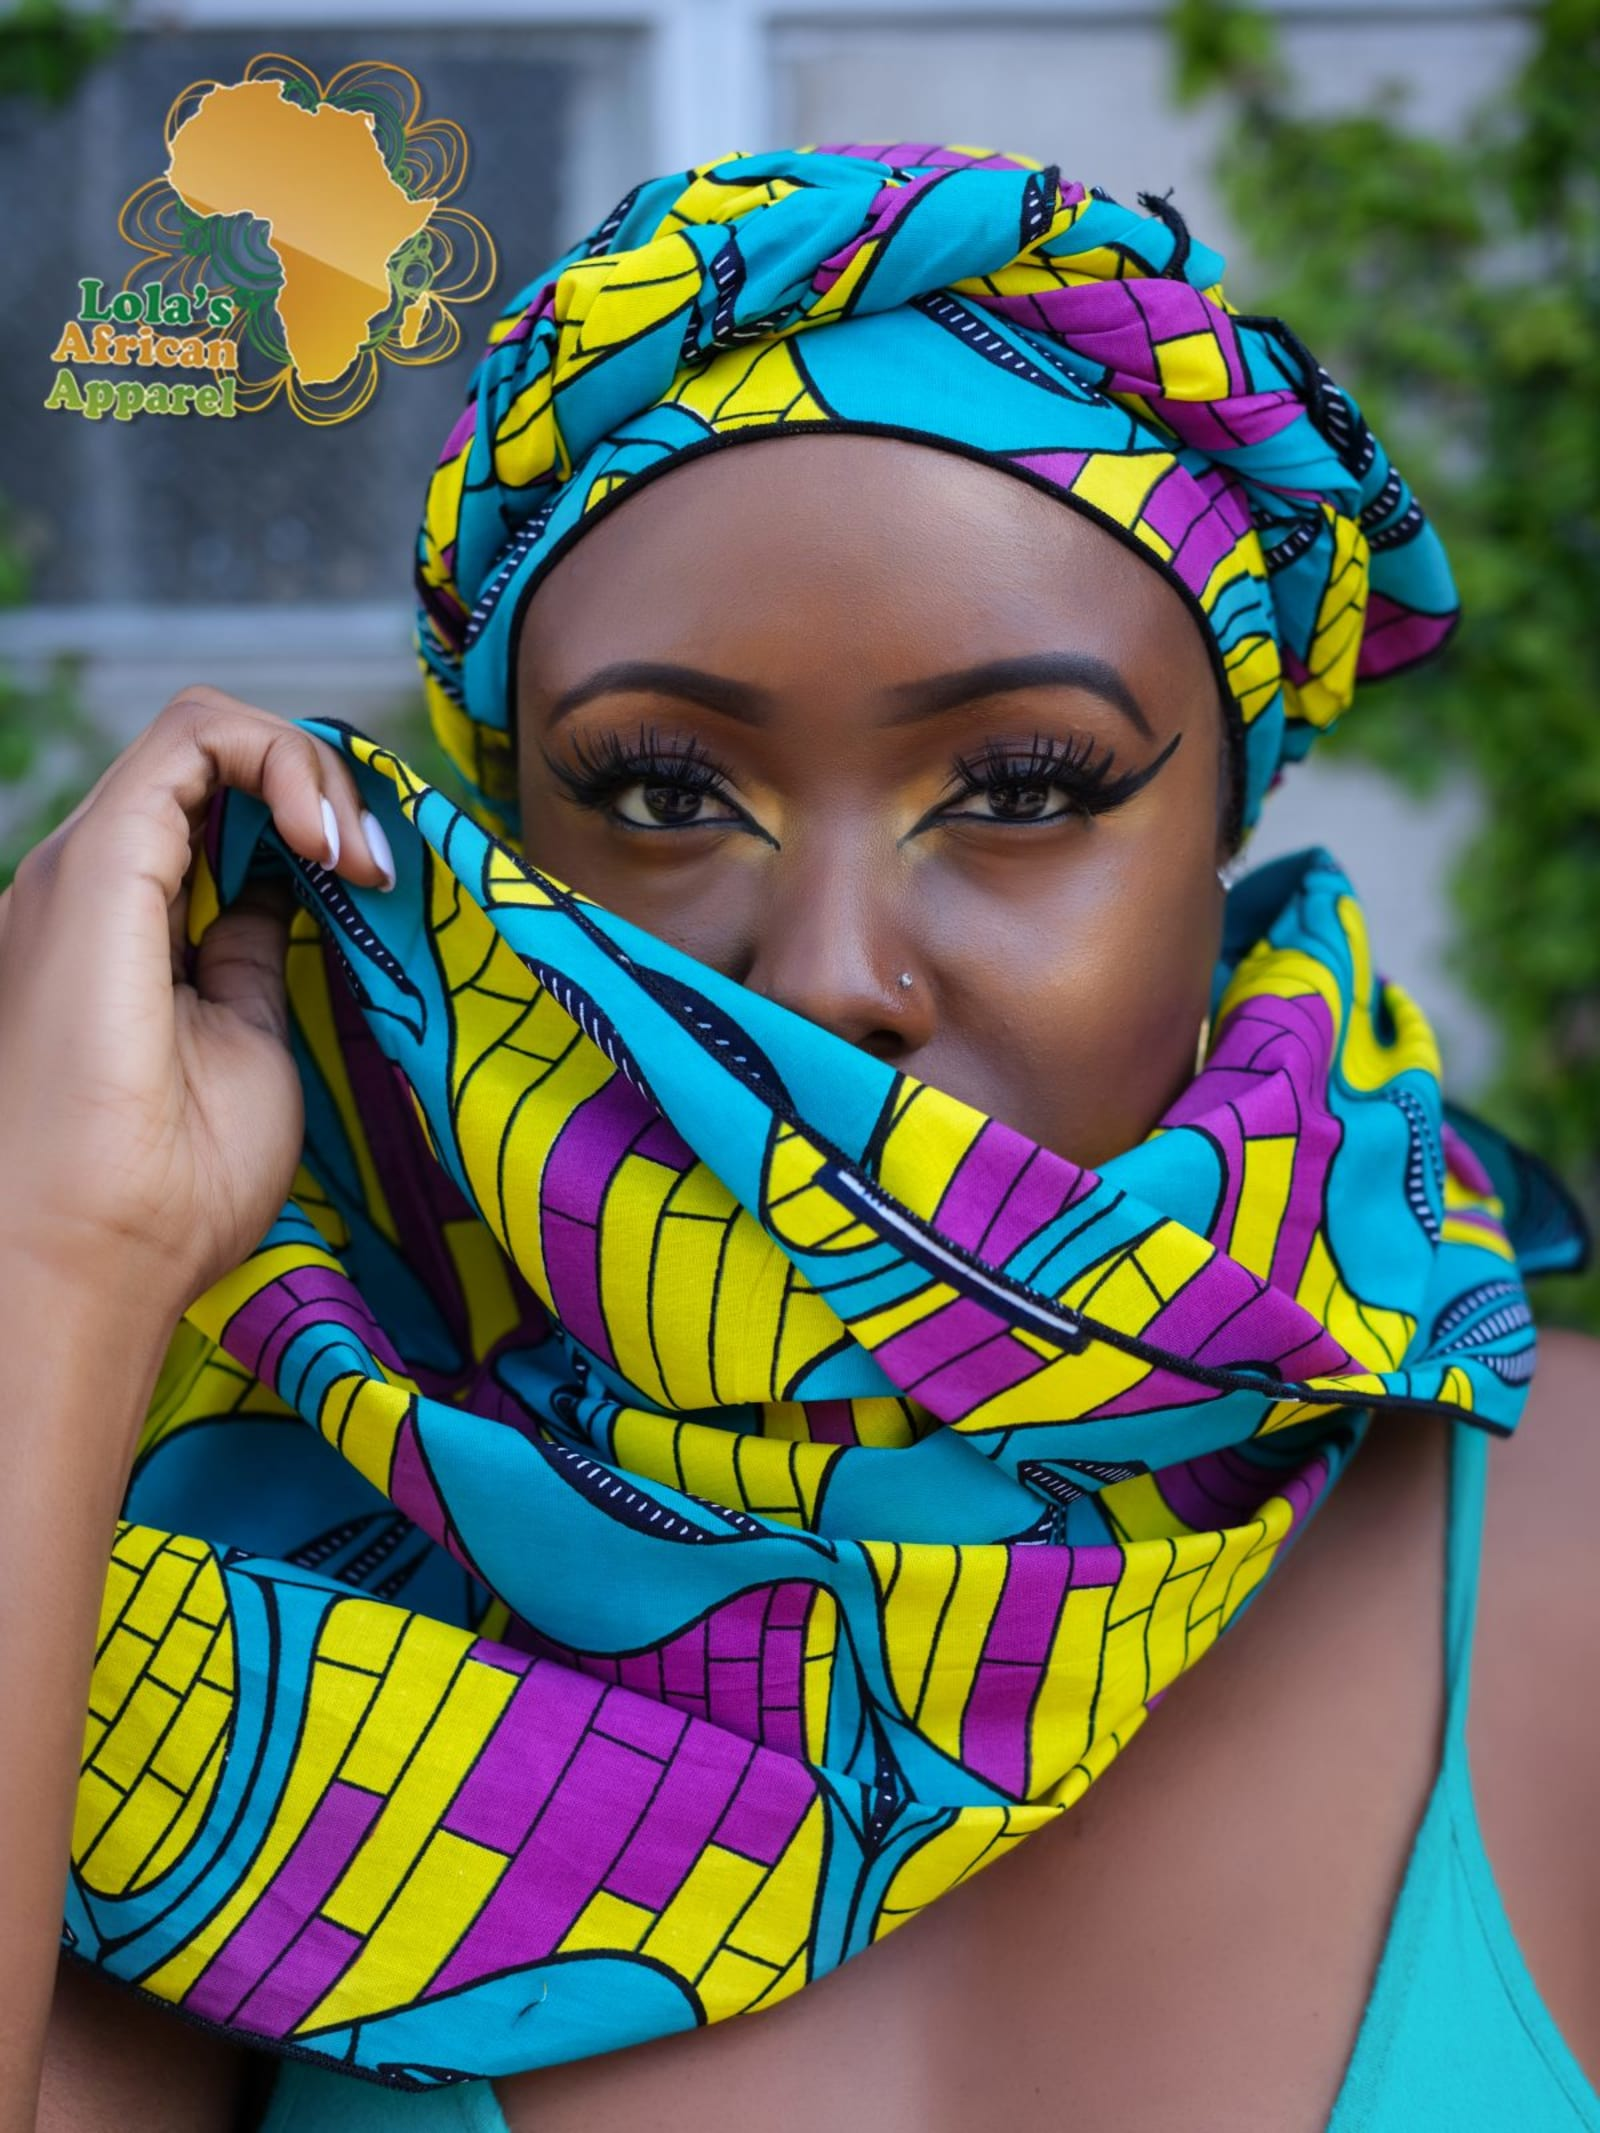 Gifts at Lola's African Apparel